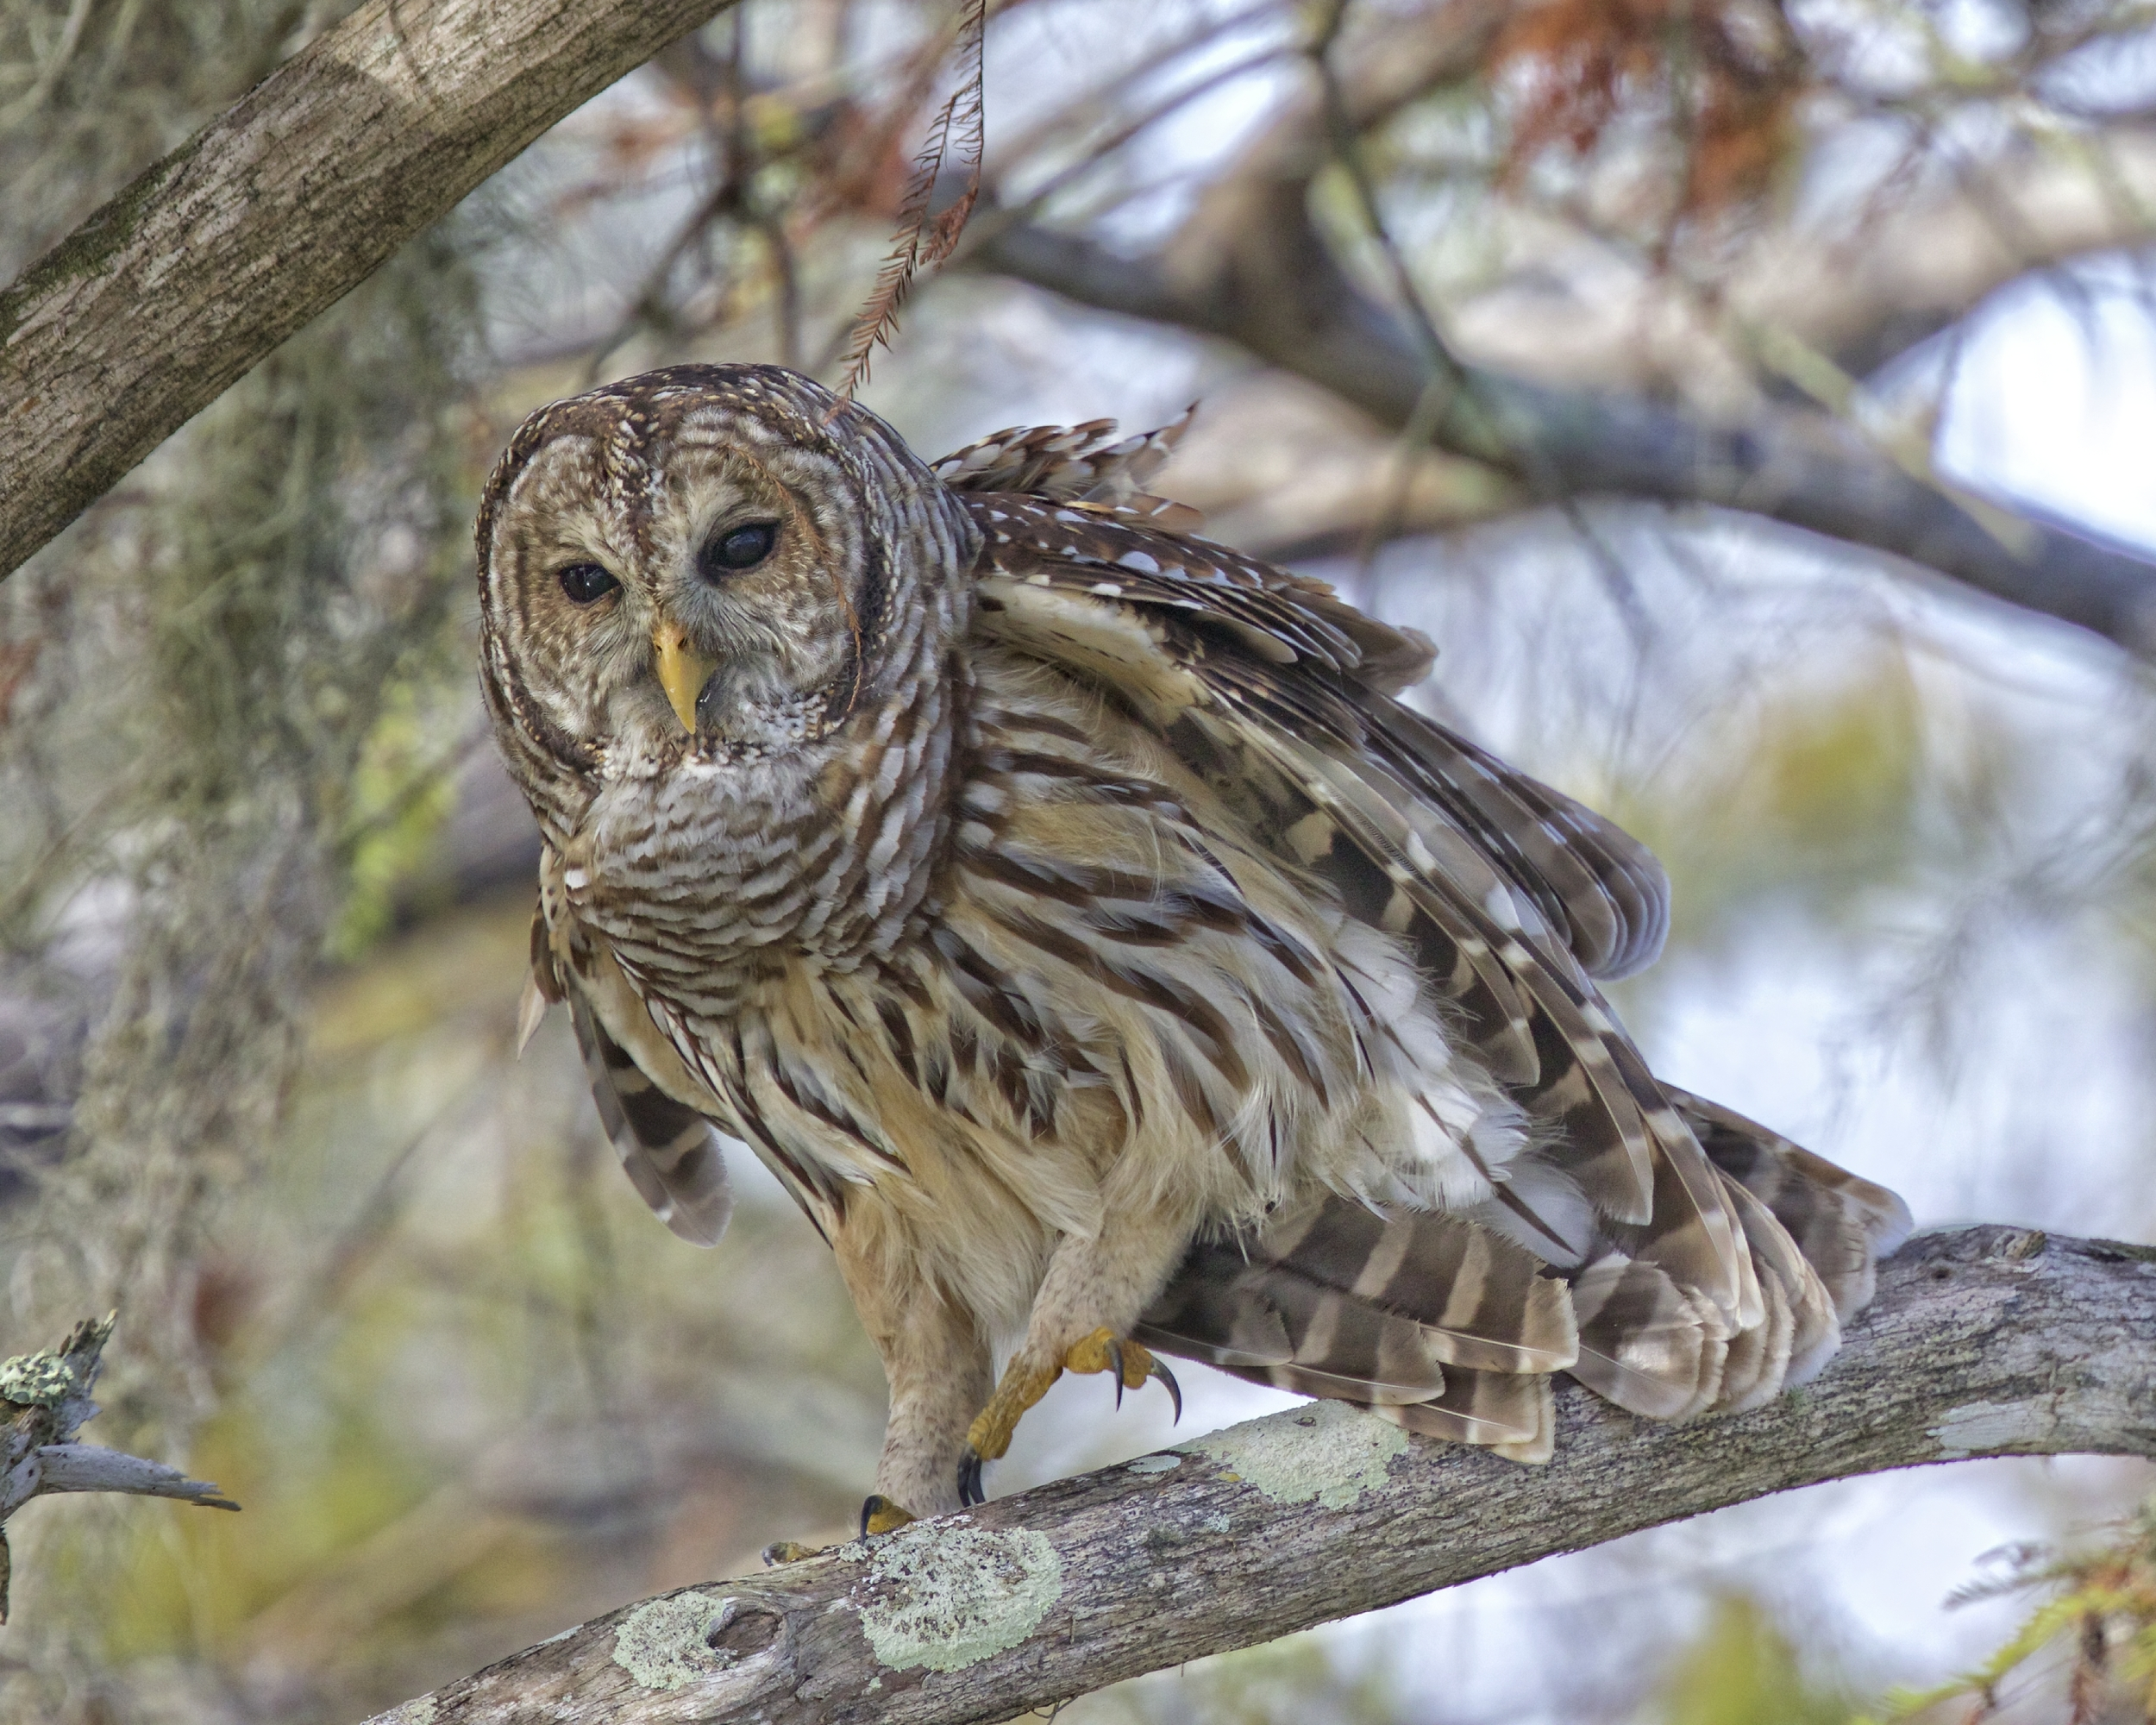 I see you in that camouflaged boat, You can't fool this wise ole owl.